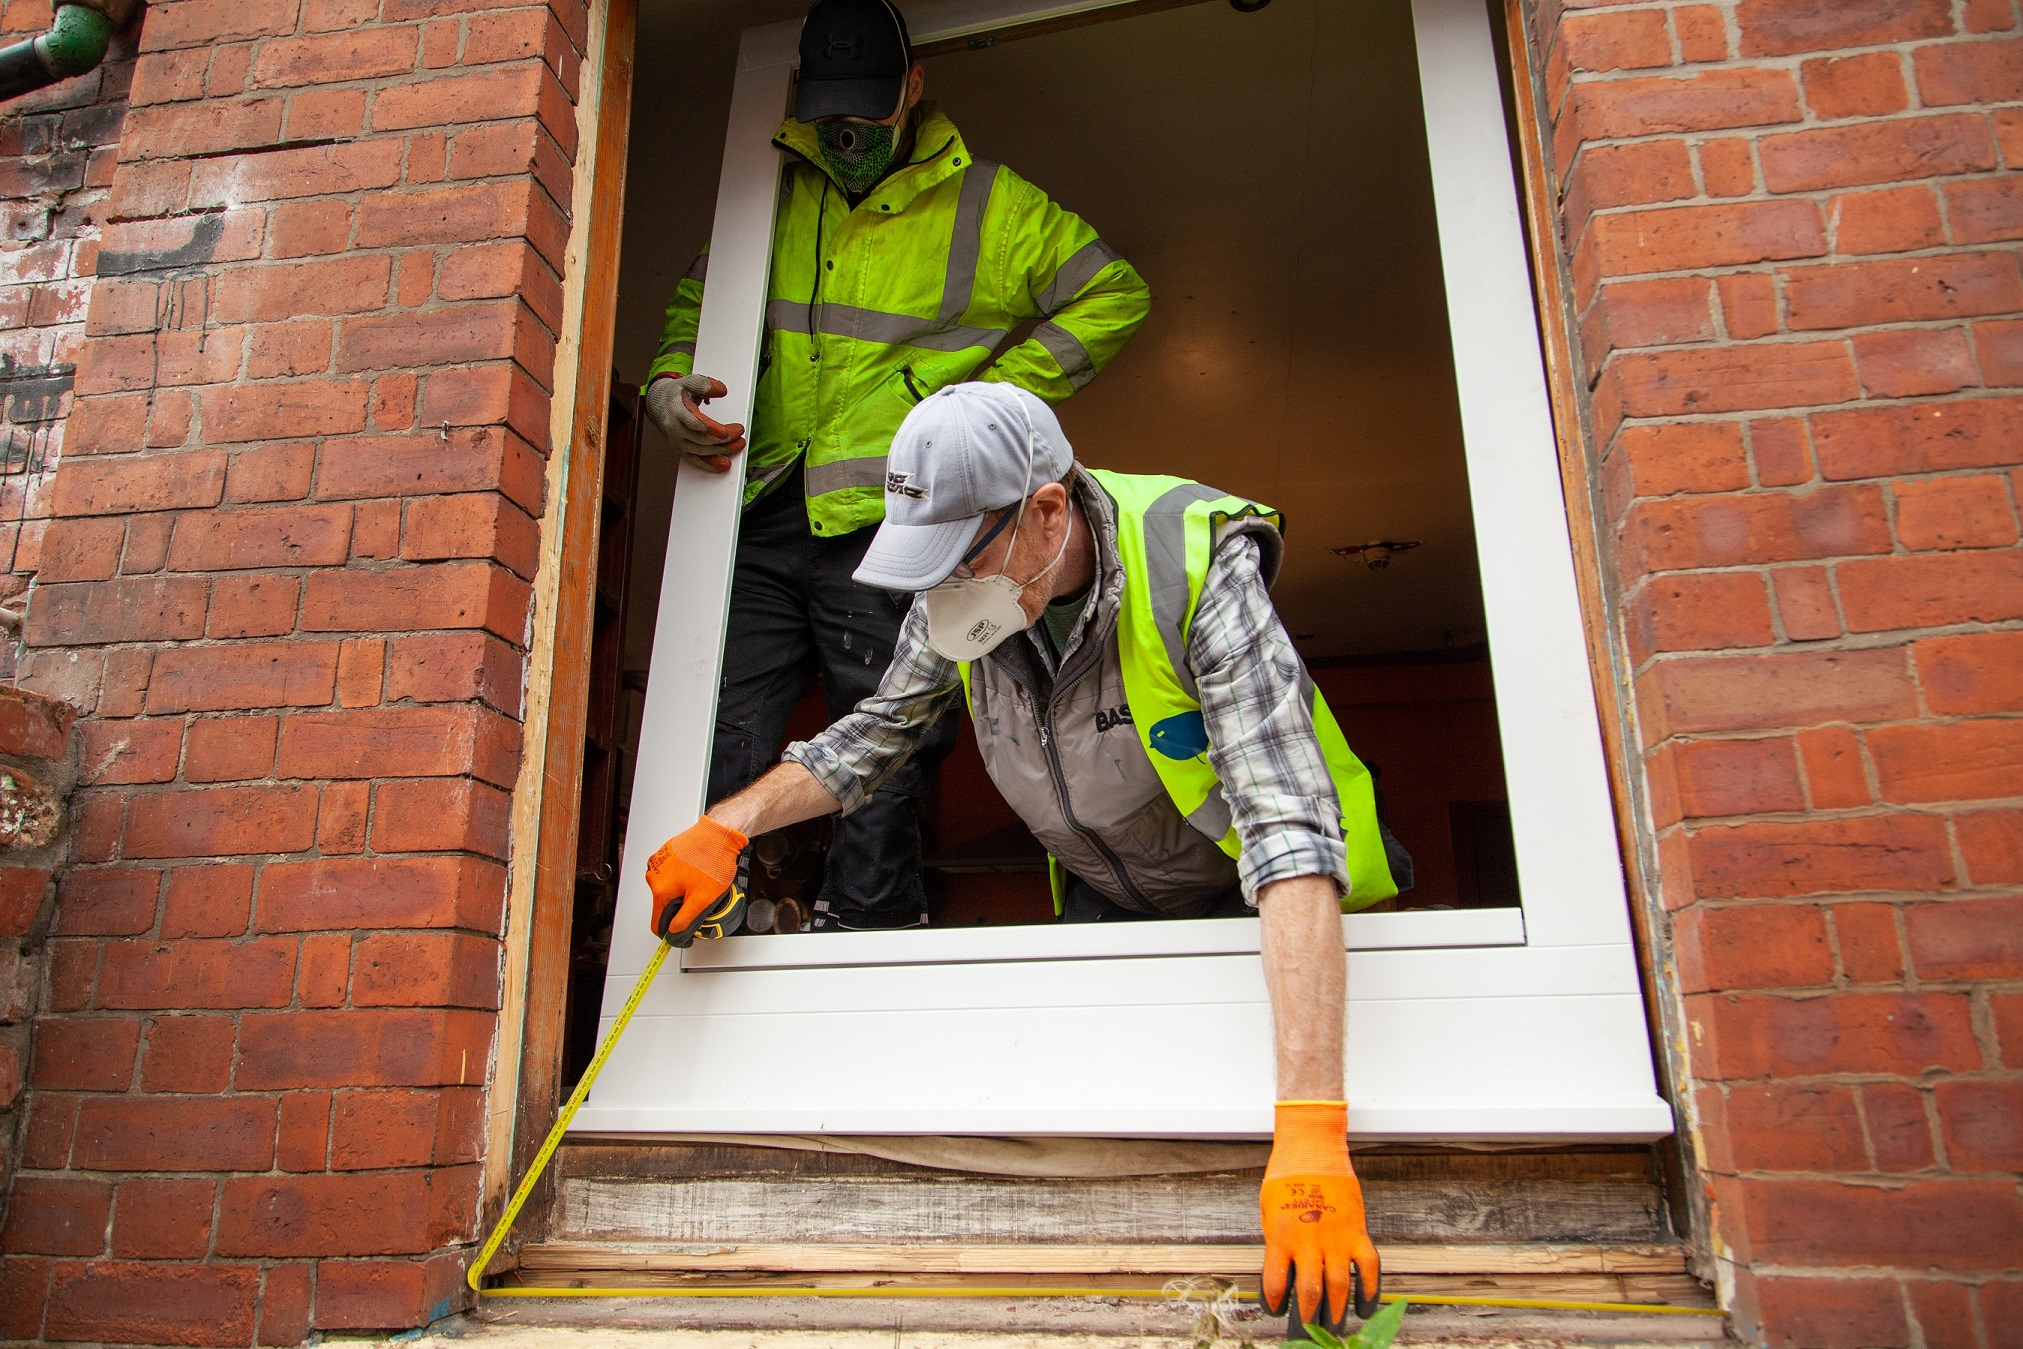 Retrofit service to train 3,500 builders from Greater Manchester in green skills by 2026